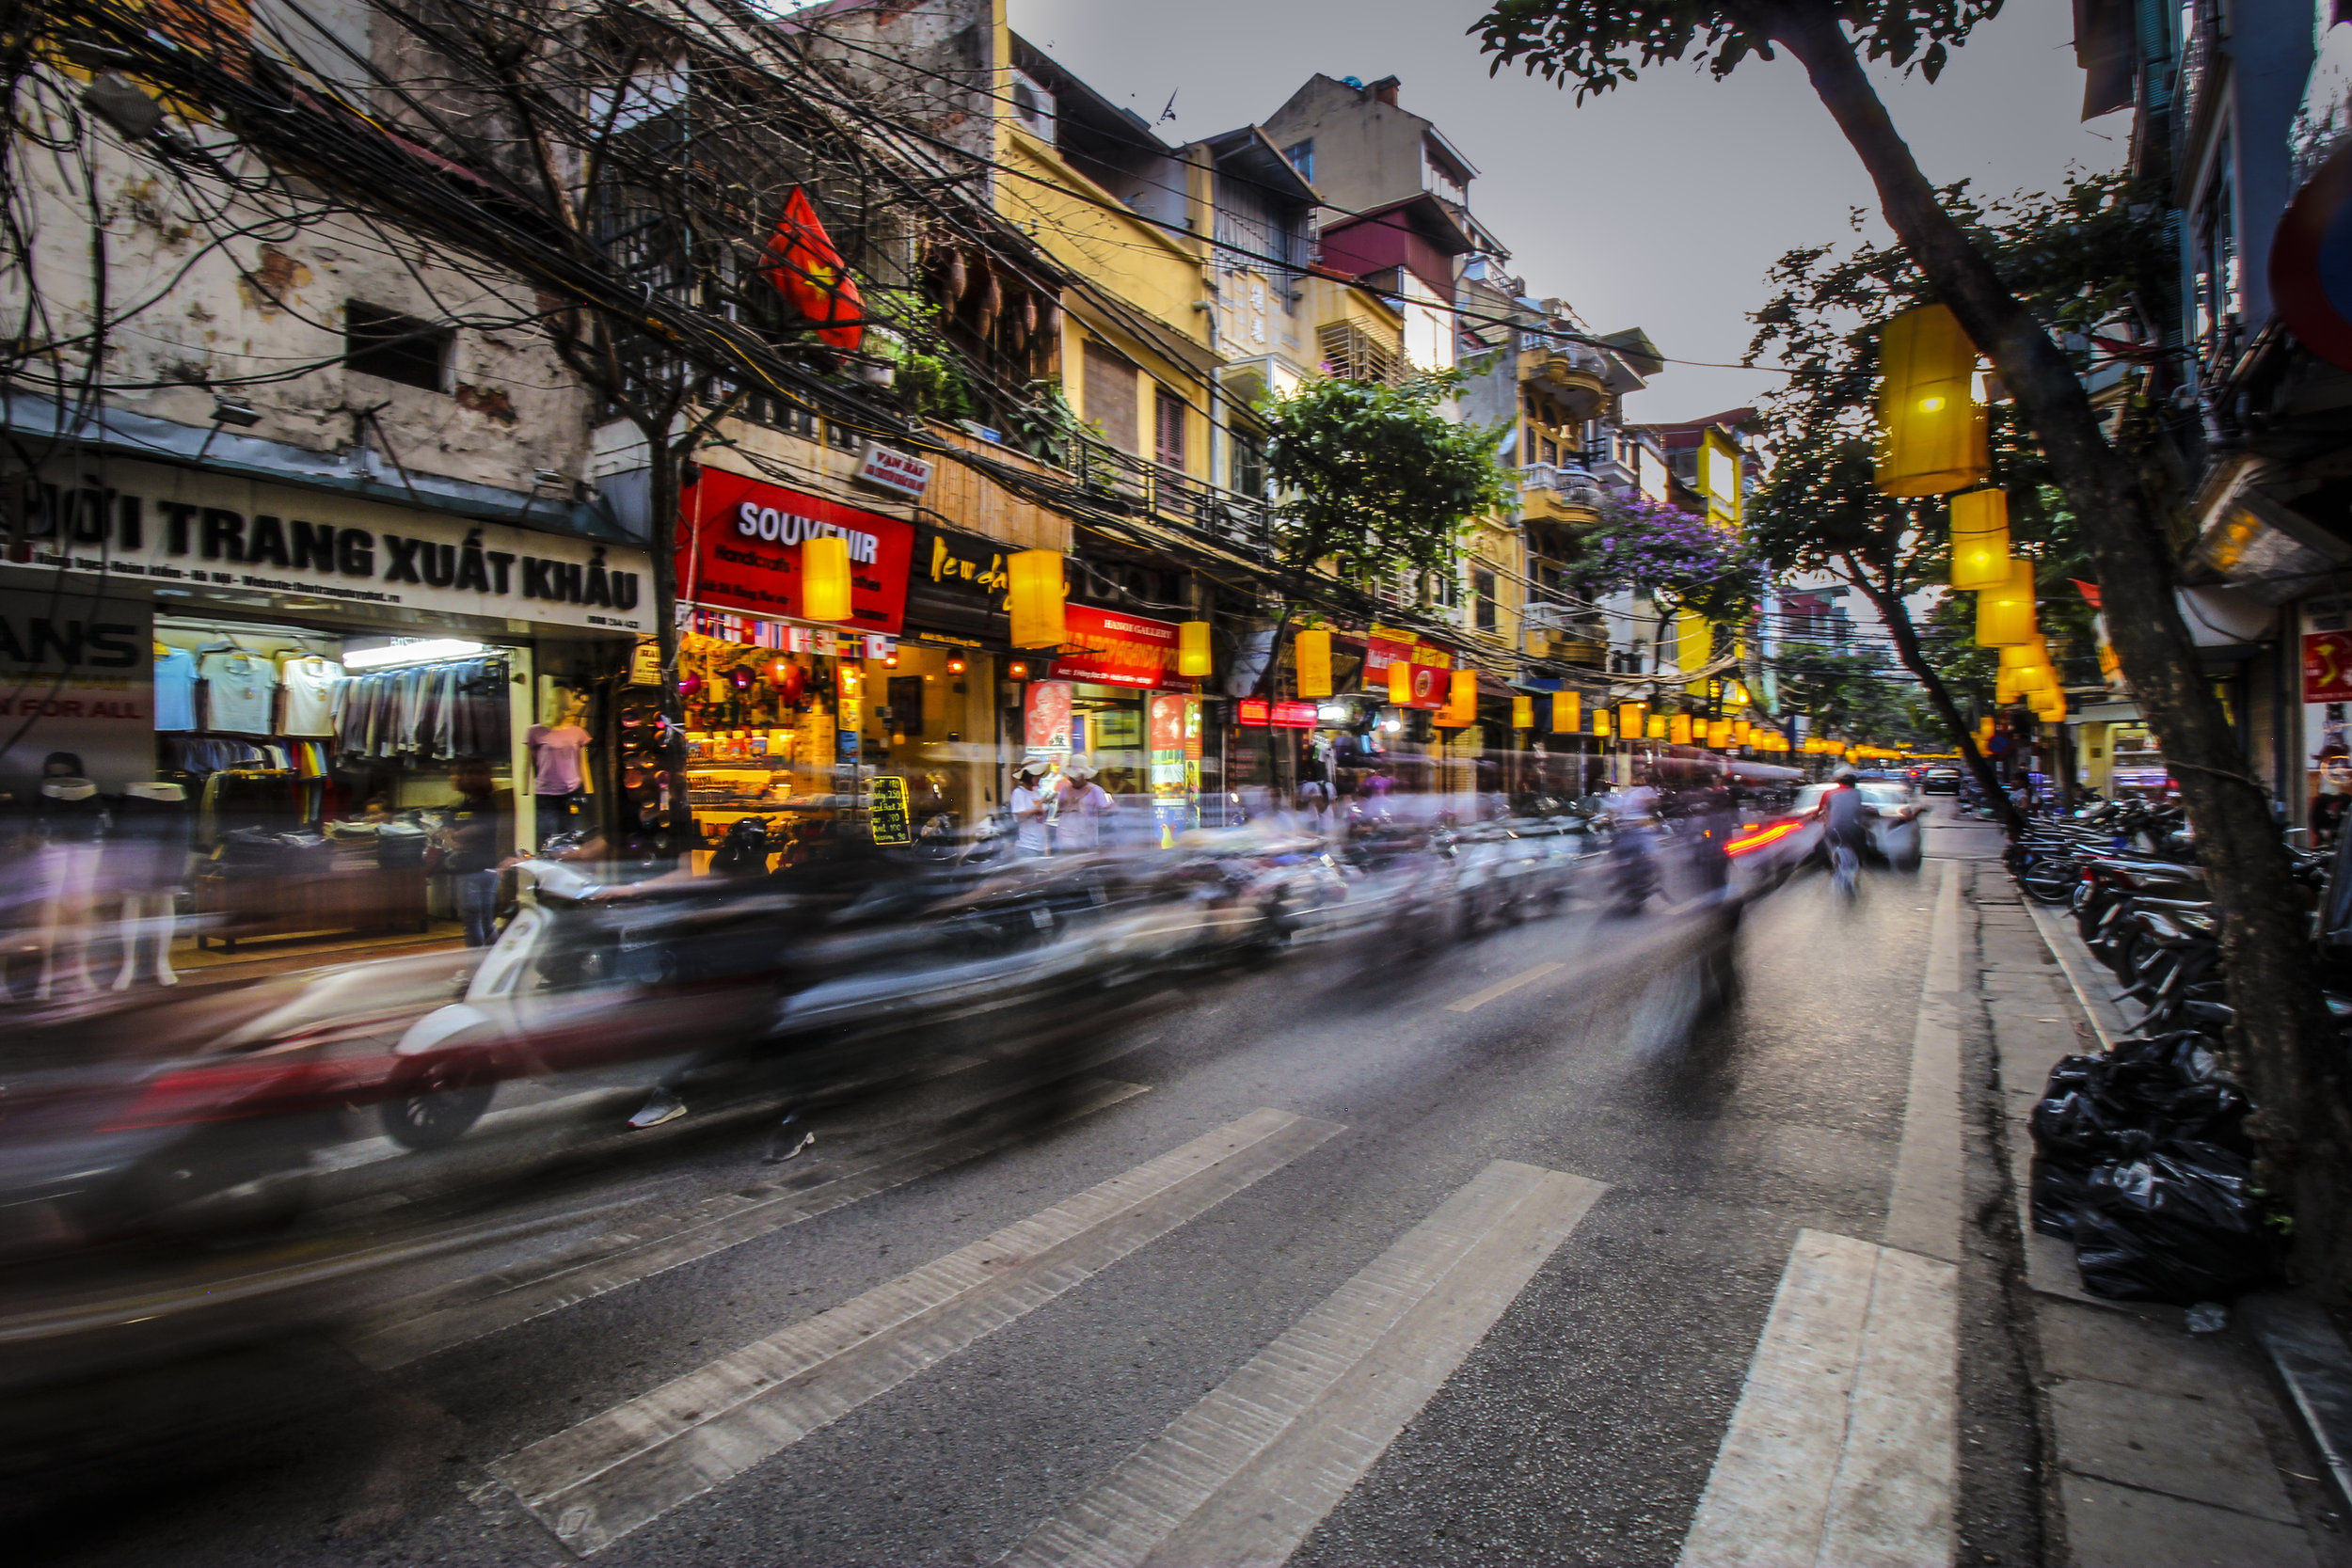 Vietnam's busy, colorful streets